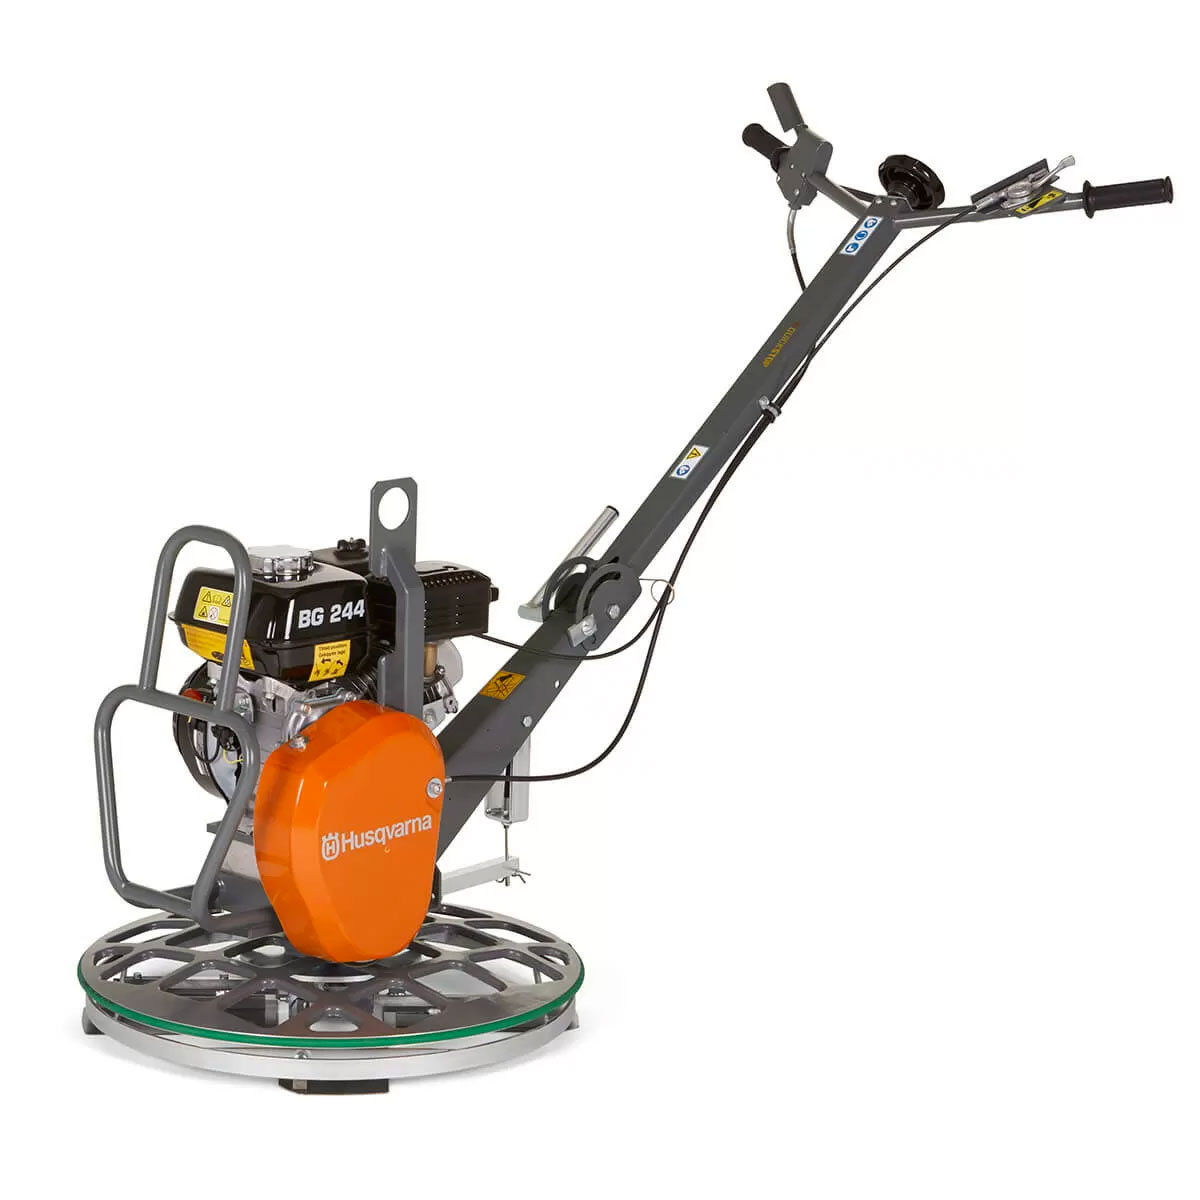 Demo Husqvarna BG244 Concrete Placement Power Trowel F TP 23.6Inch 600mm Honda GX120 Used BG 244 967859301A A Rated